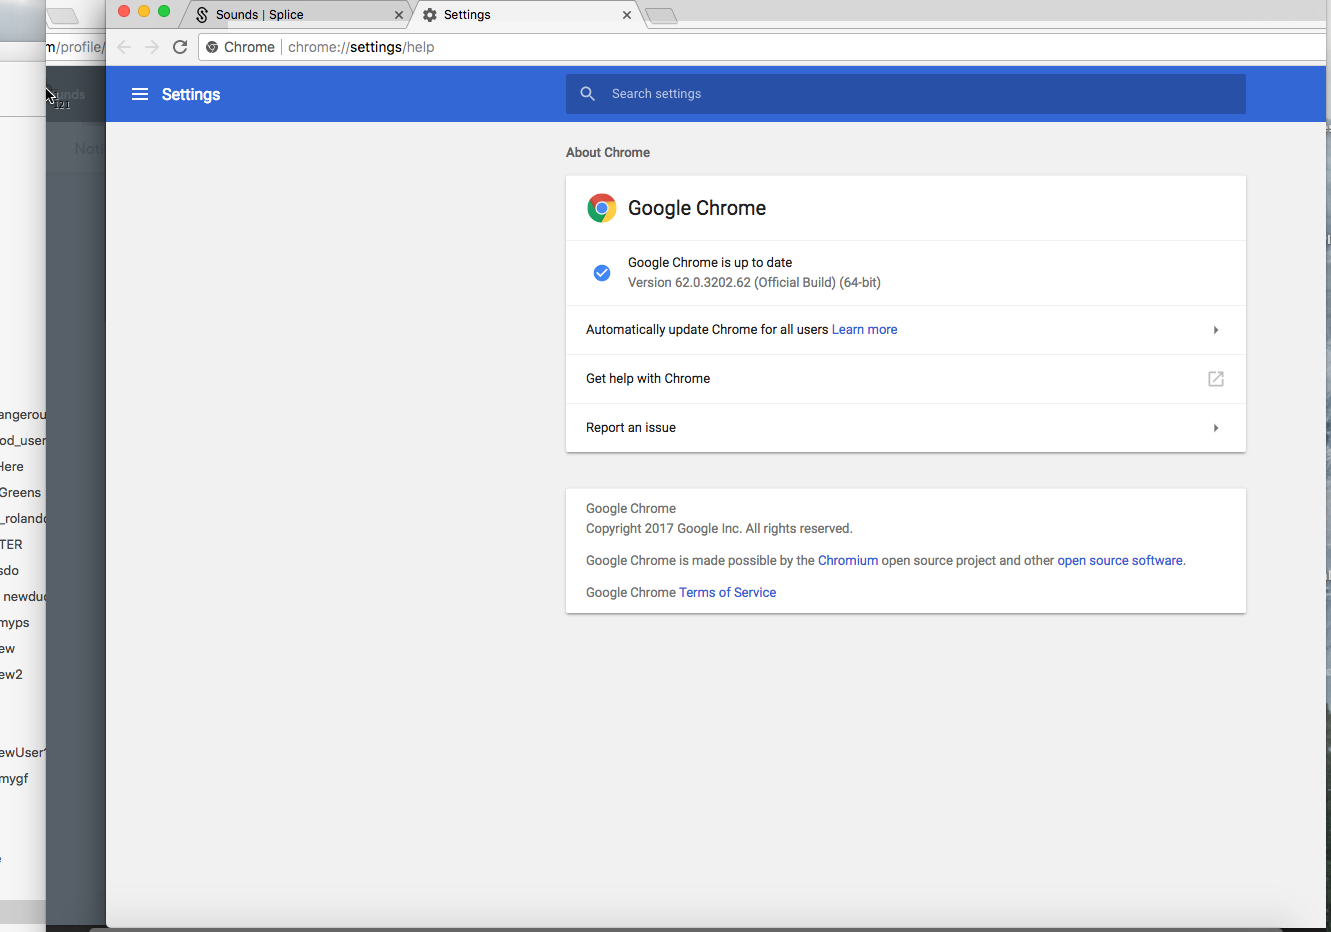 New version of Chrome opens up chrome://settings/help page when a